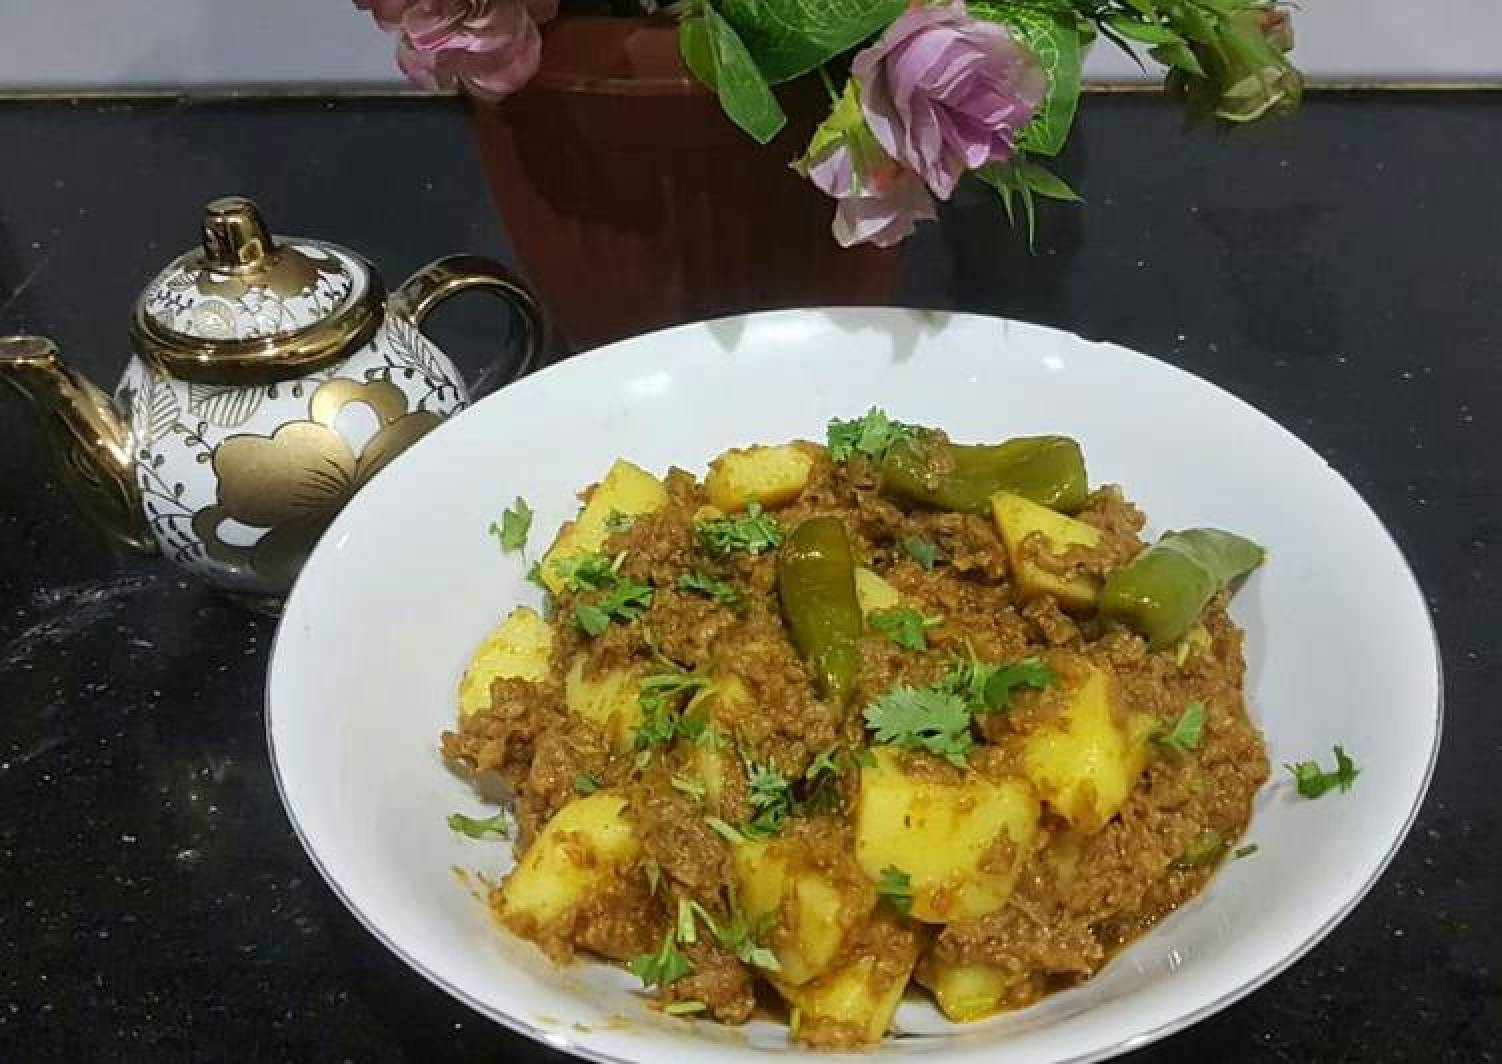 Aaloo qeema(potato with mince meat)